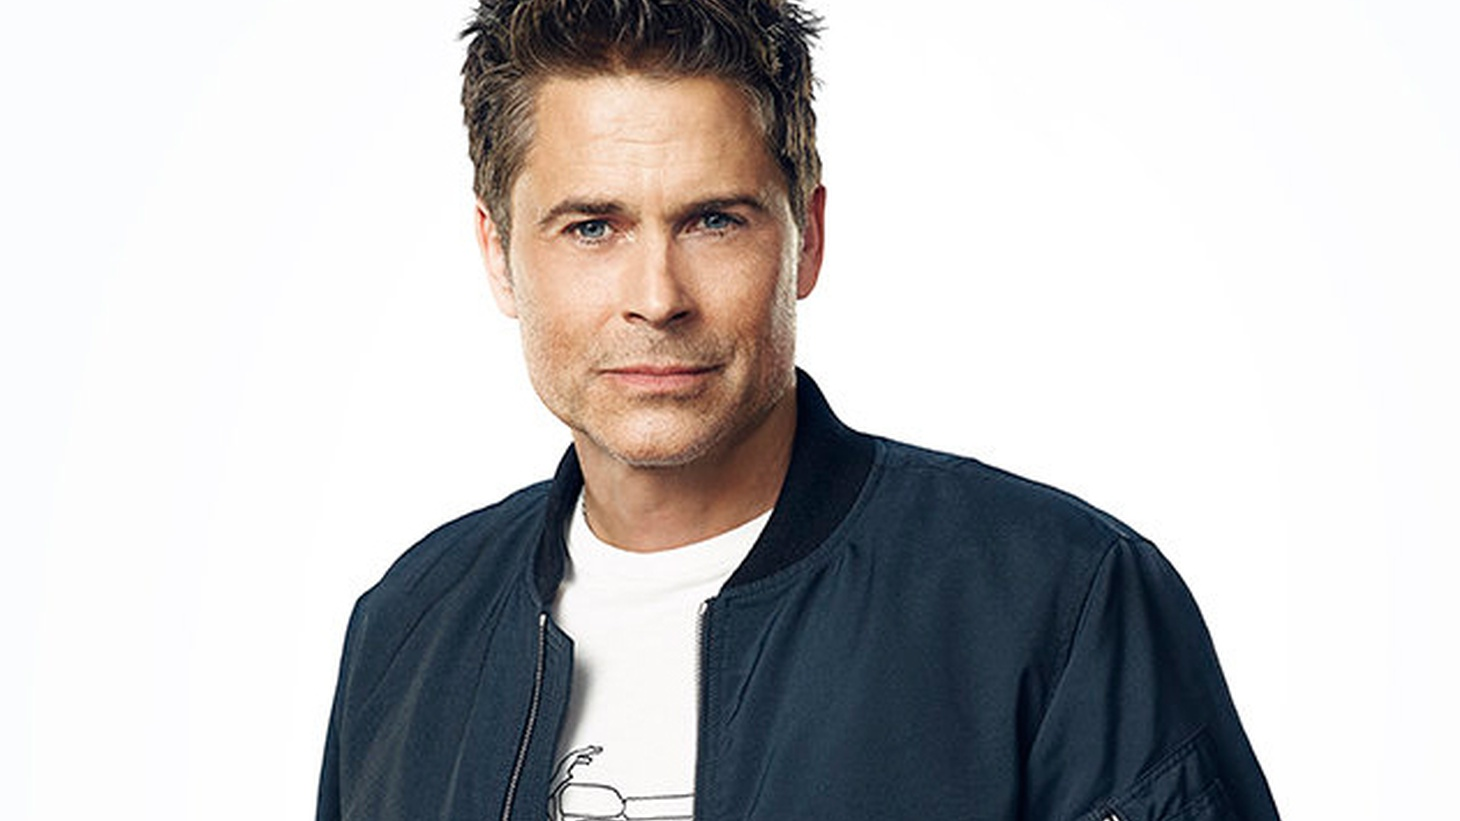 In Fox's wry sitcom The Grinder, Rob Lowe starred as an actor famous for playing a lawyer on TV. The show drew praise from critics, but struggled in the ratings. Now it's been cancelled and Lowe tells us he's questioning what's next.